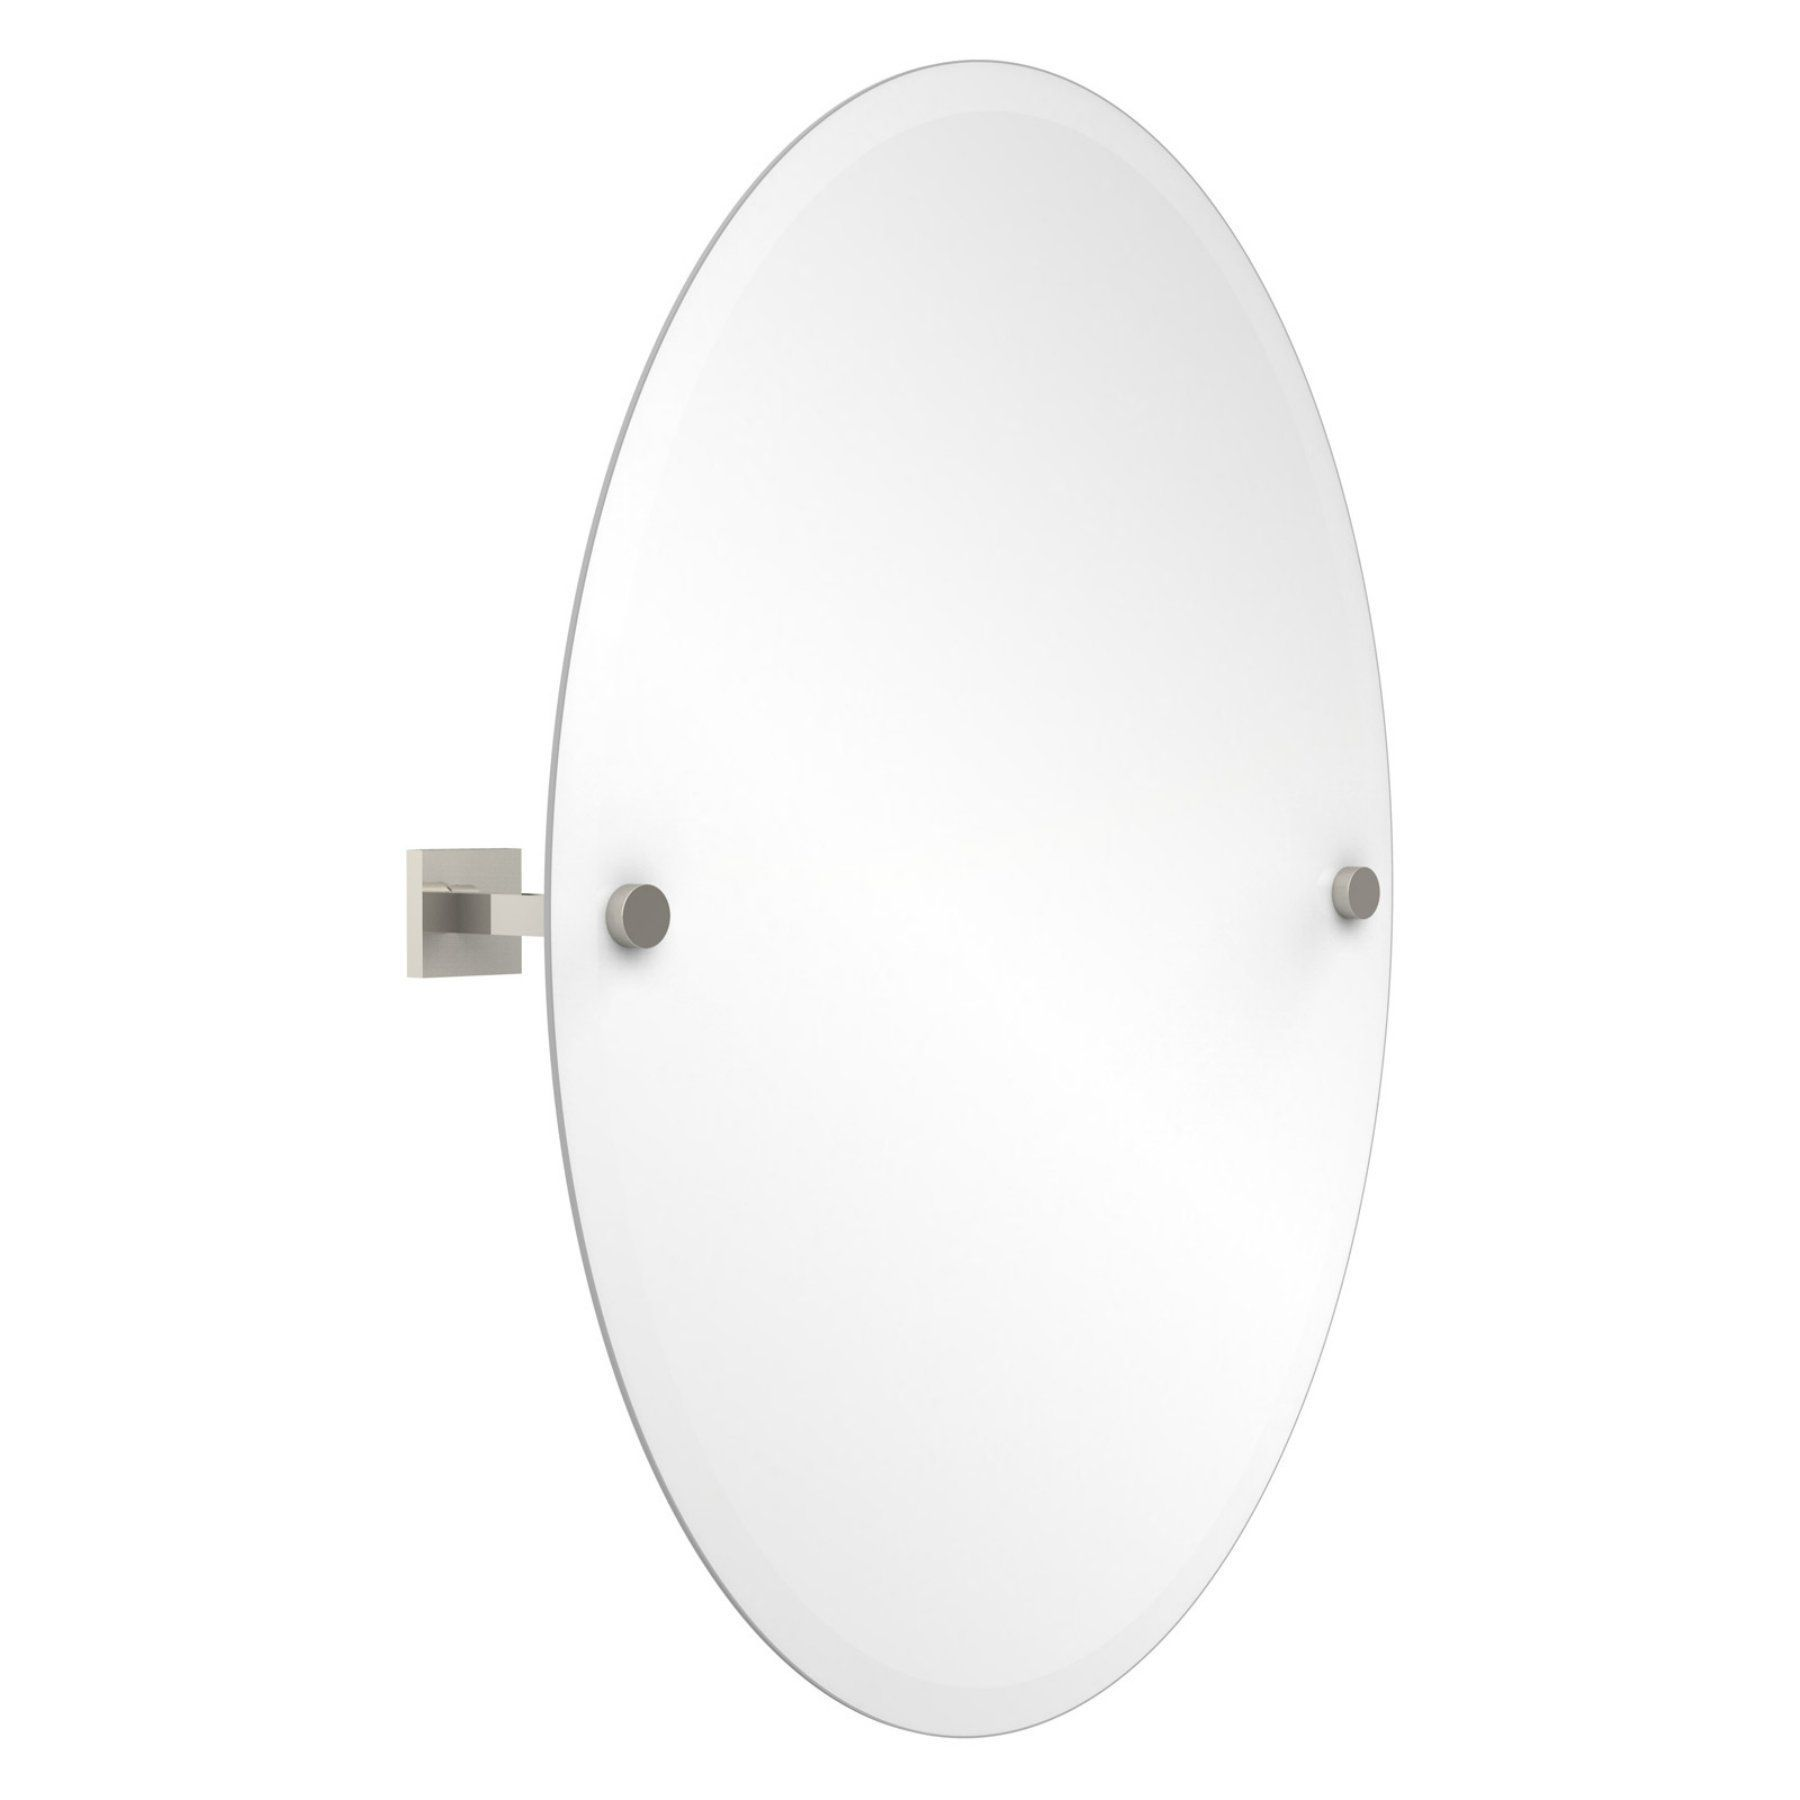 Uttermost Pursley Brushed Nickel Oval Mirror Primitiverusticdecor Oval Mirror Bathroom Oval Mirror Framed